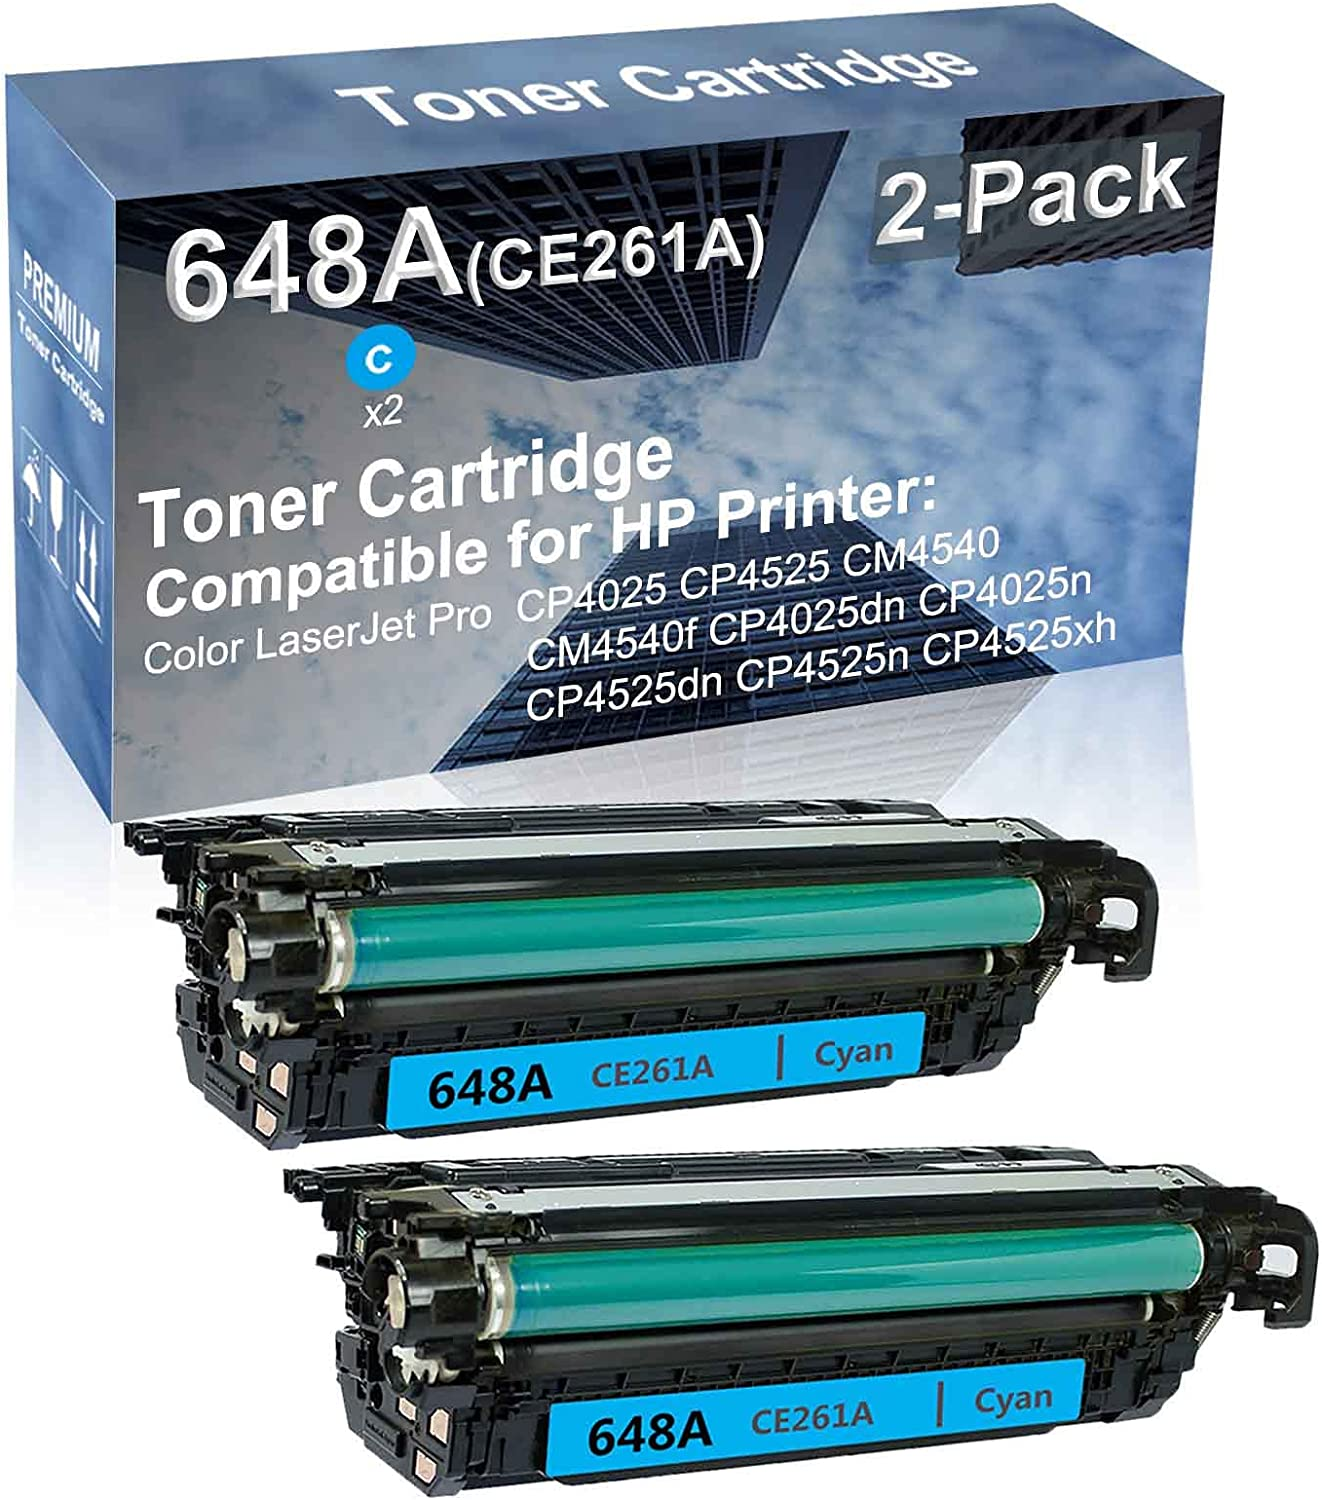 2-Pack (Cyan) Compatible High Yield 648A (CE261A) Laser Printer Toner Cartridge use for HP CP4525dn CP4525n CP4525xh Printer